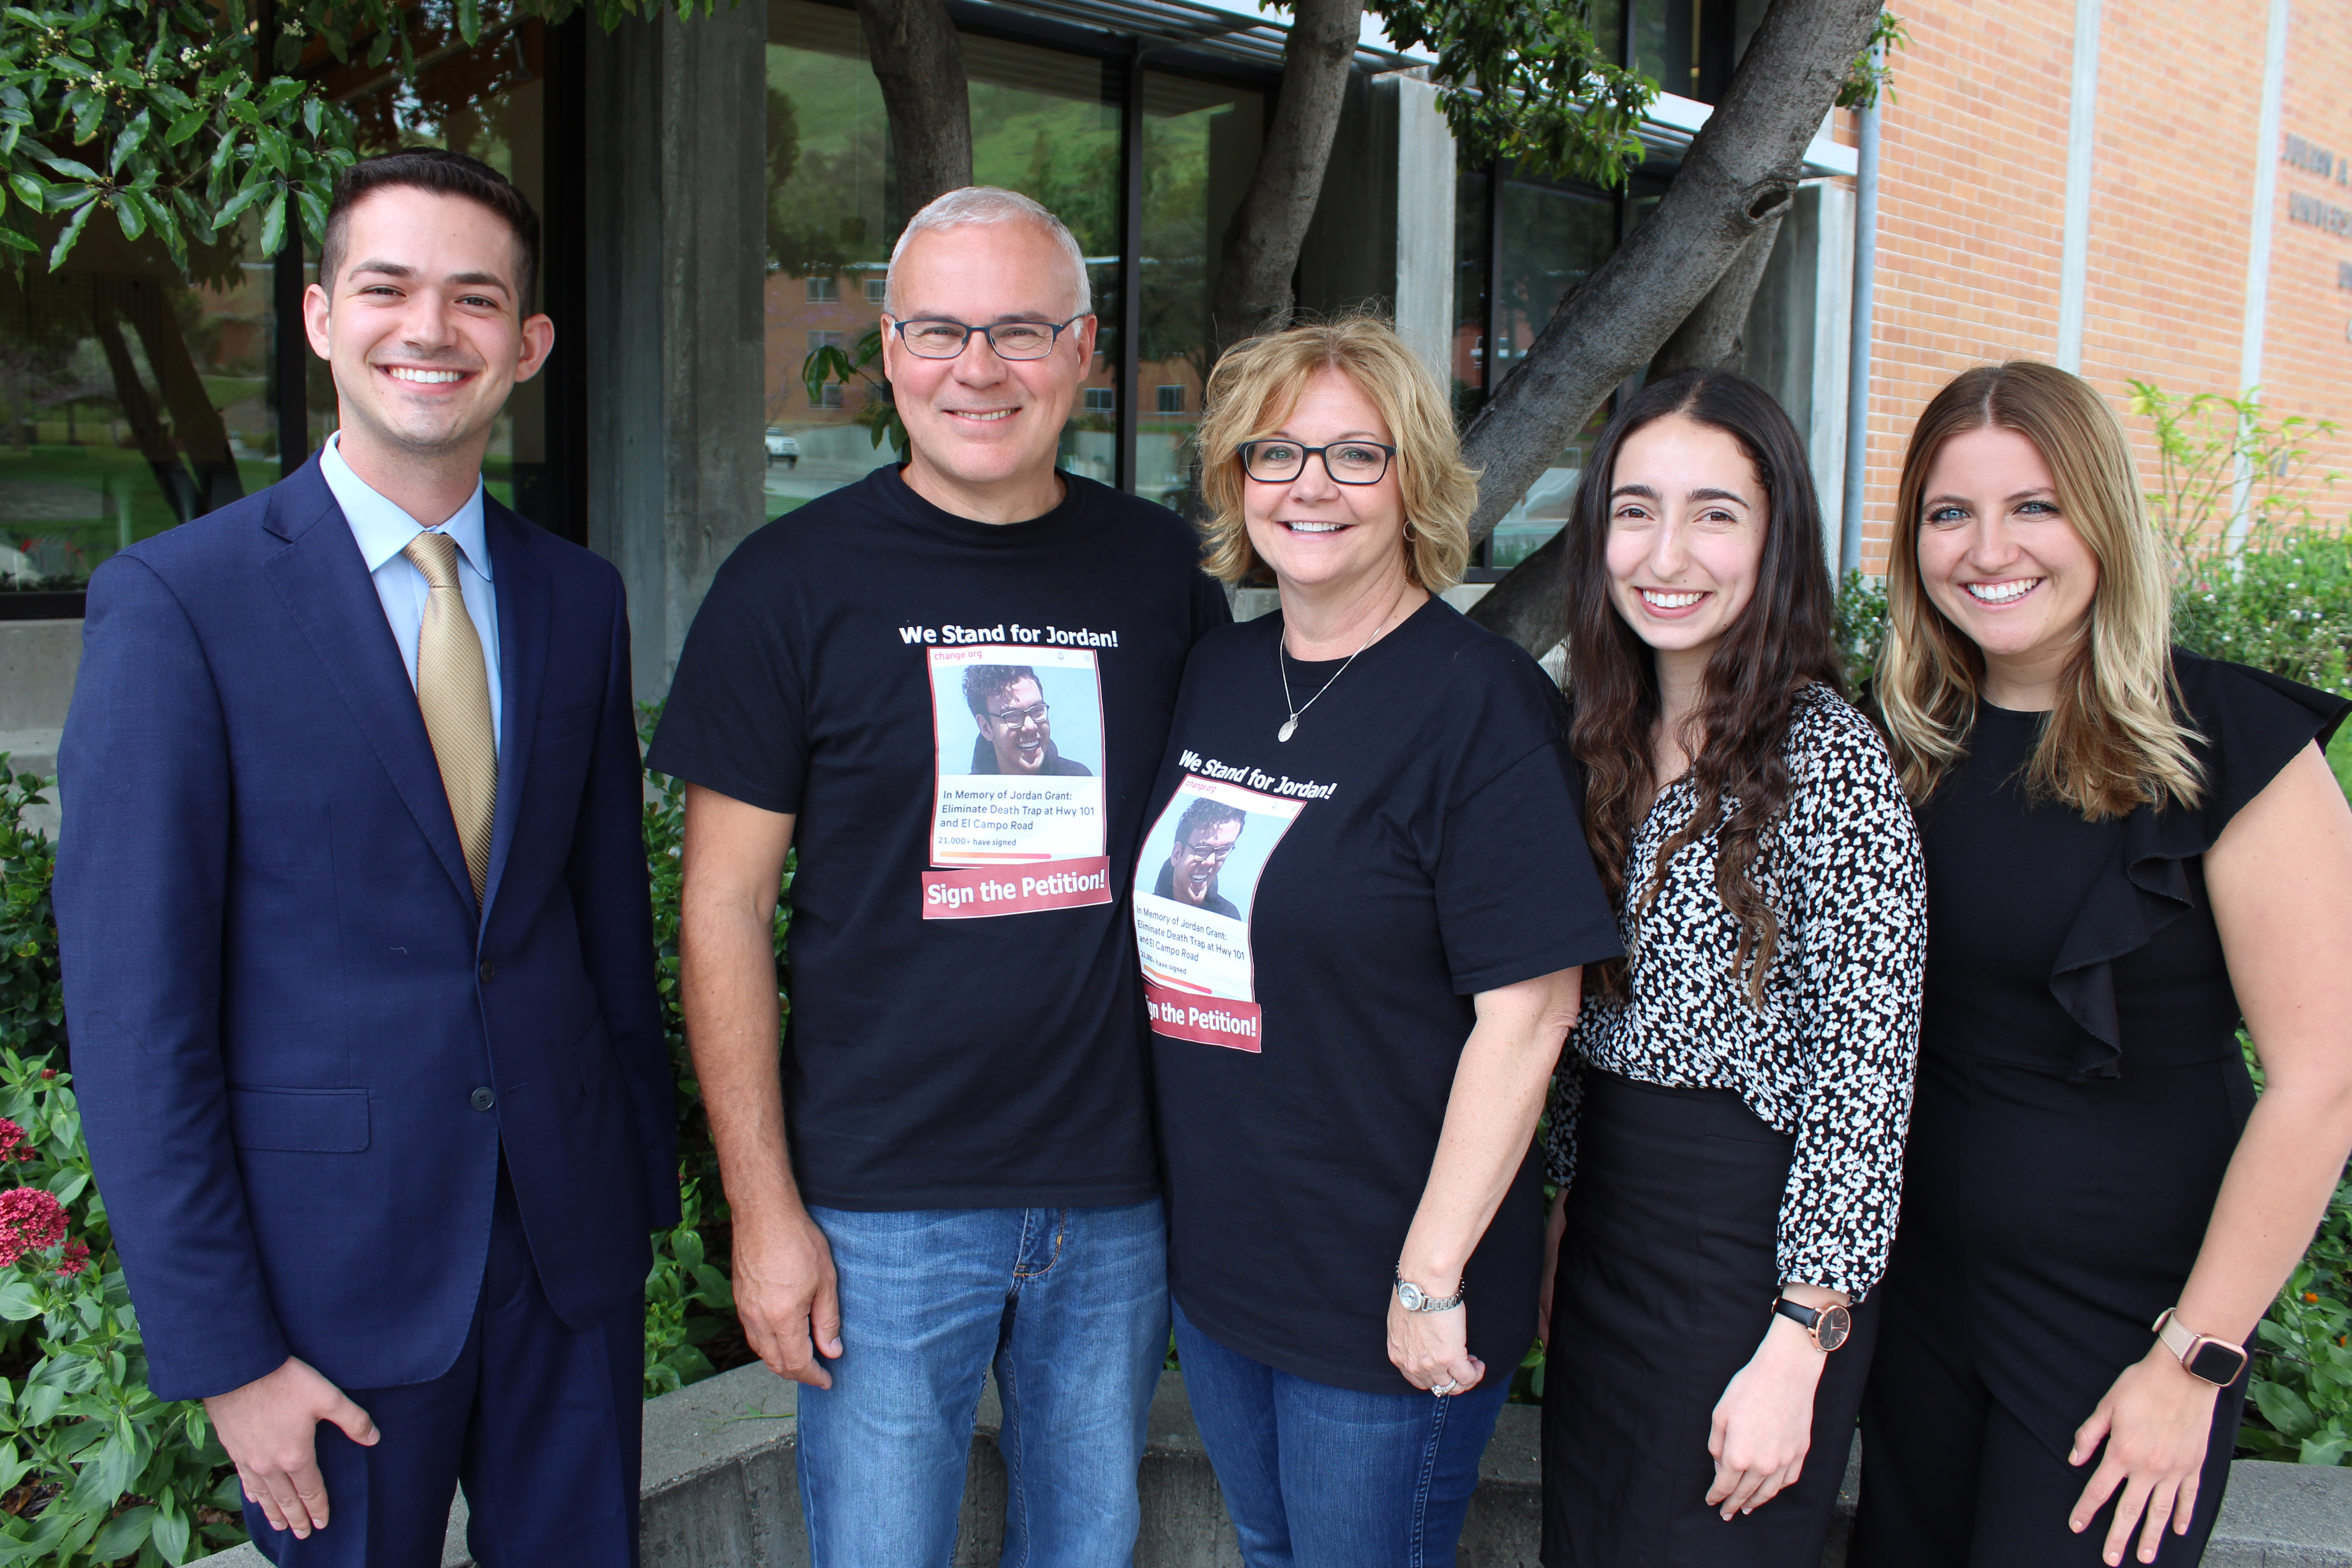 Jordan Grant's parents stand and smile with three Student Government leaders